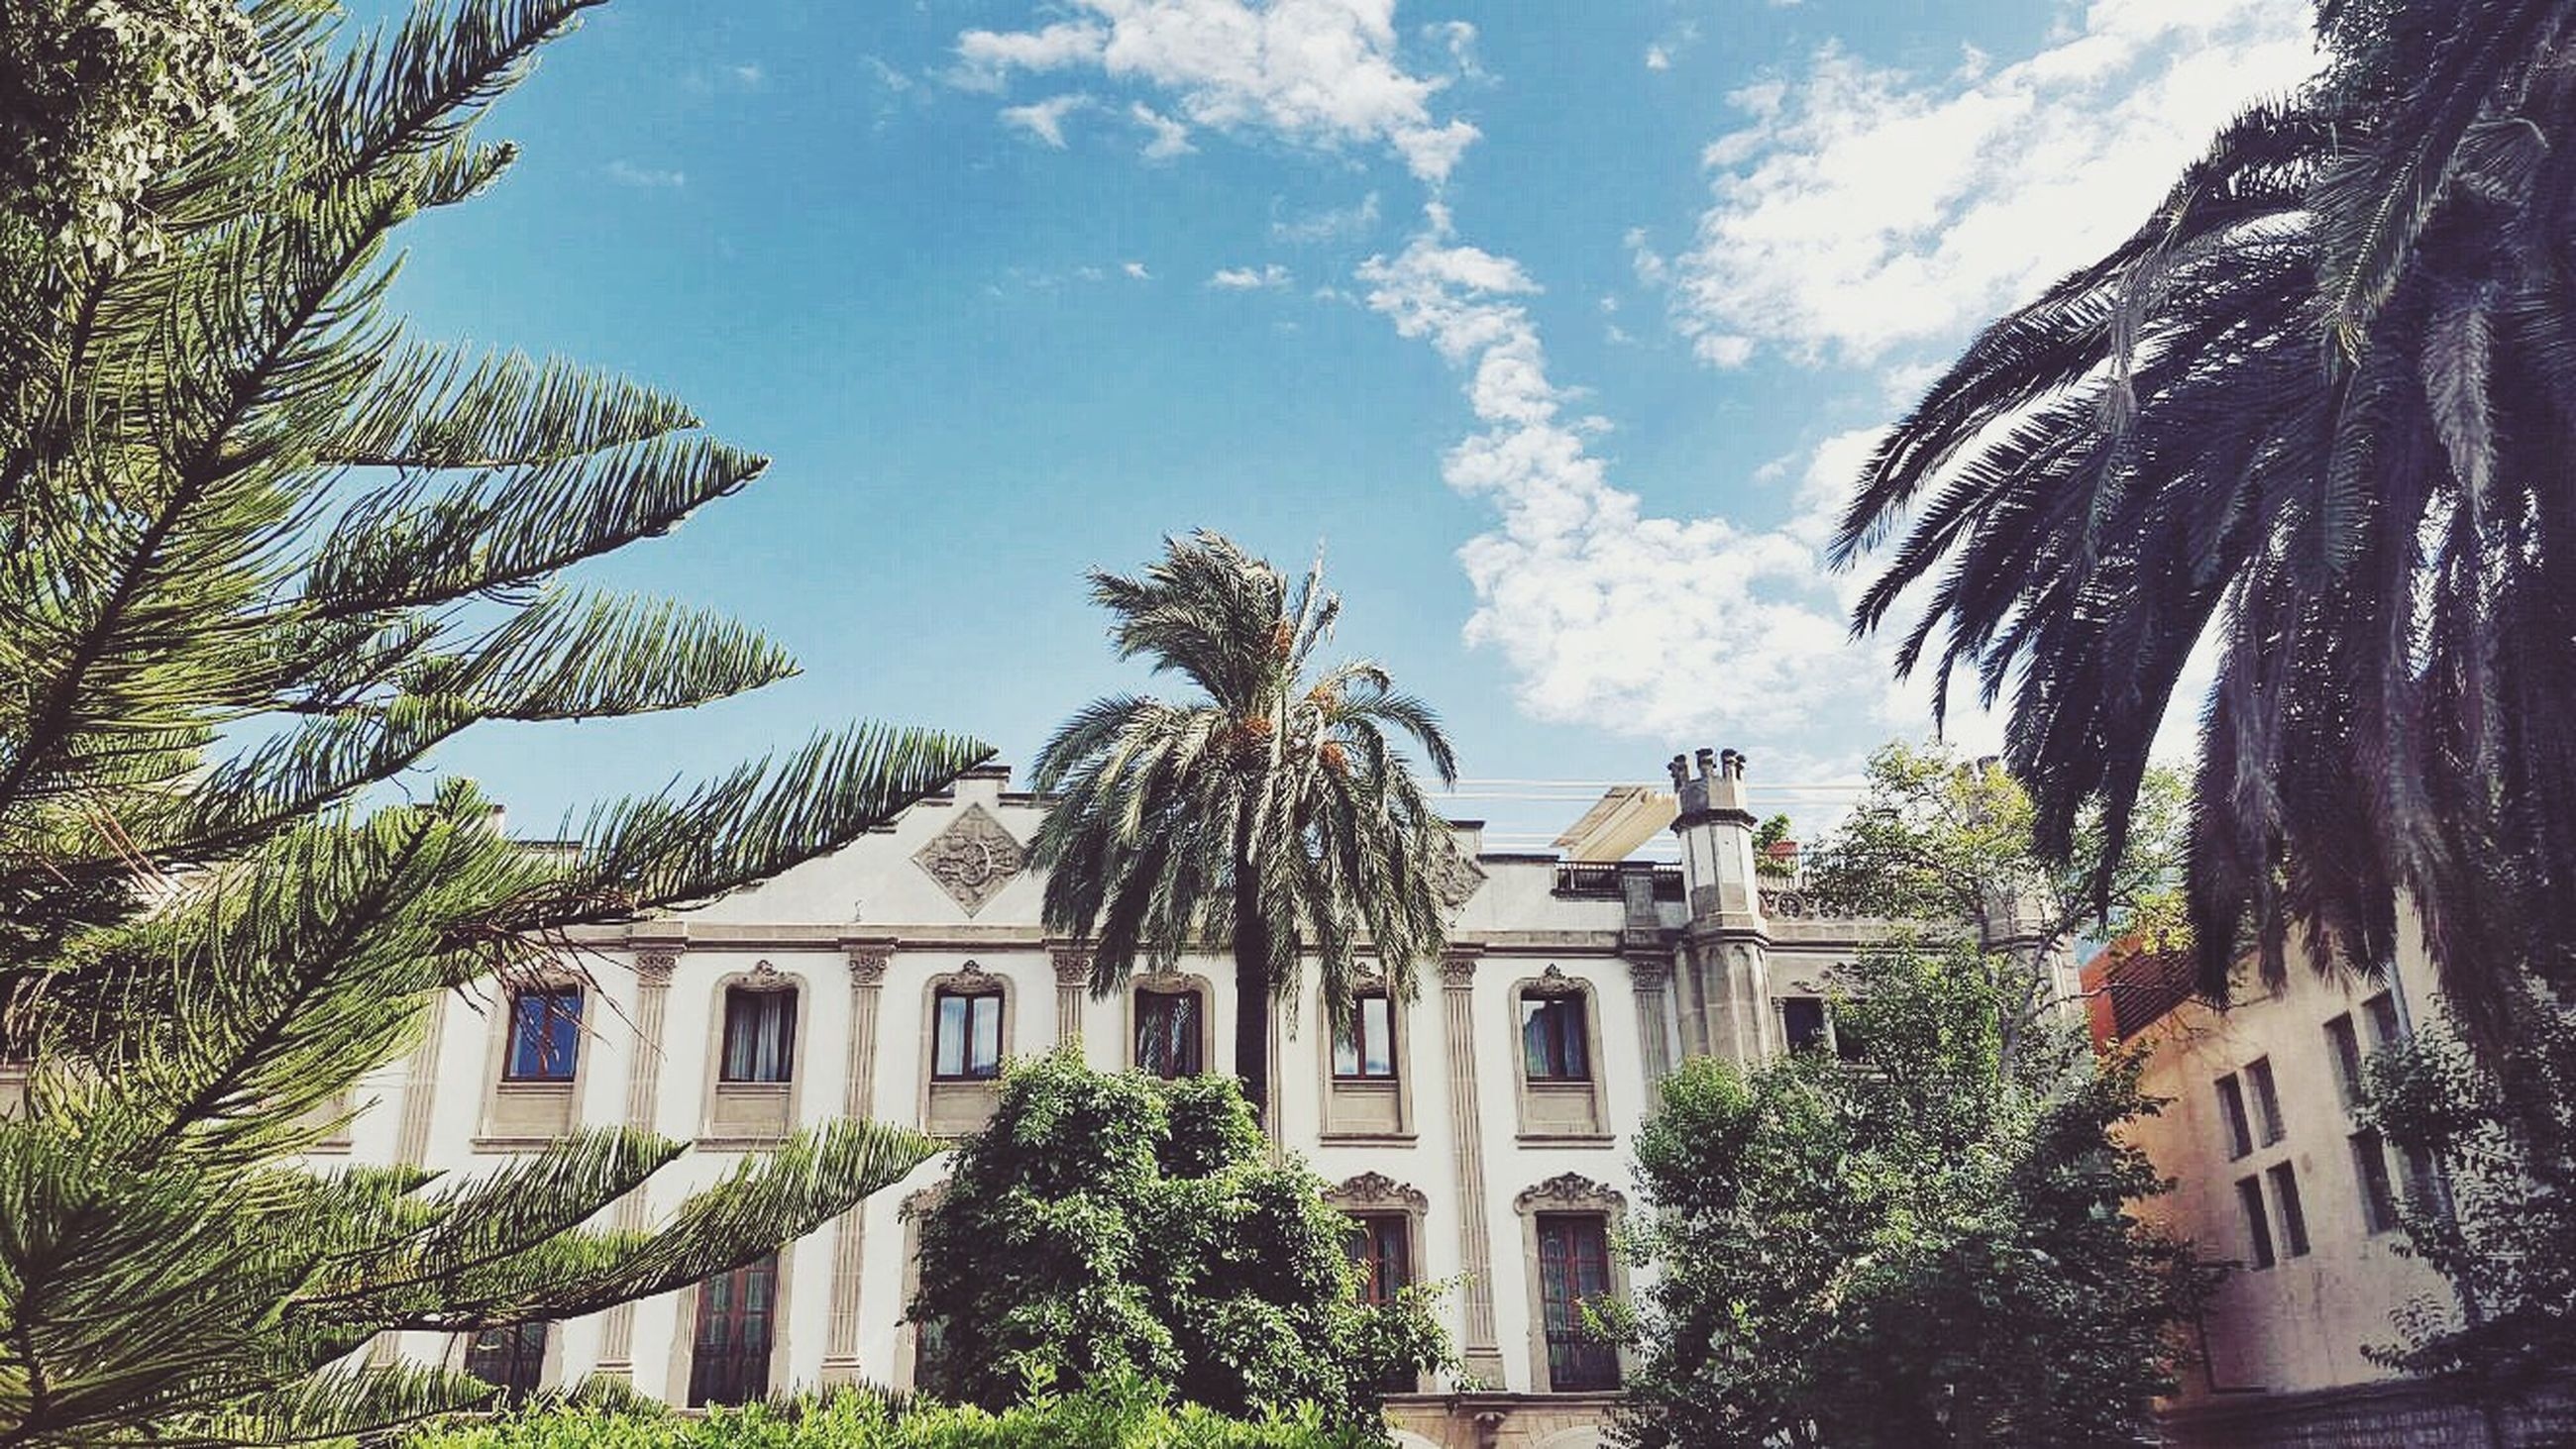 building exterior, architecture, built structure, tree, sky, low angle view, palm tree, house, residential building, growth, cloud - sky, residential structure, cloud, window, building, day, no people, sunlight, outdoors, branch